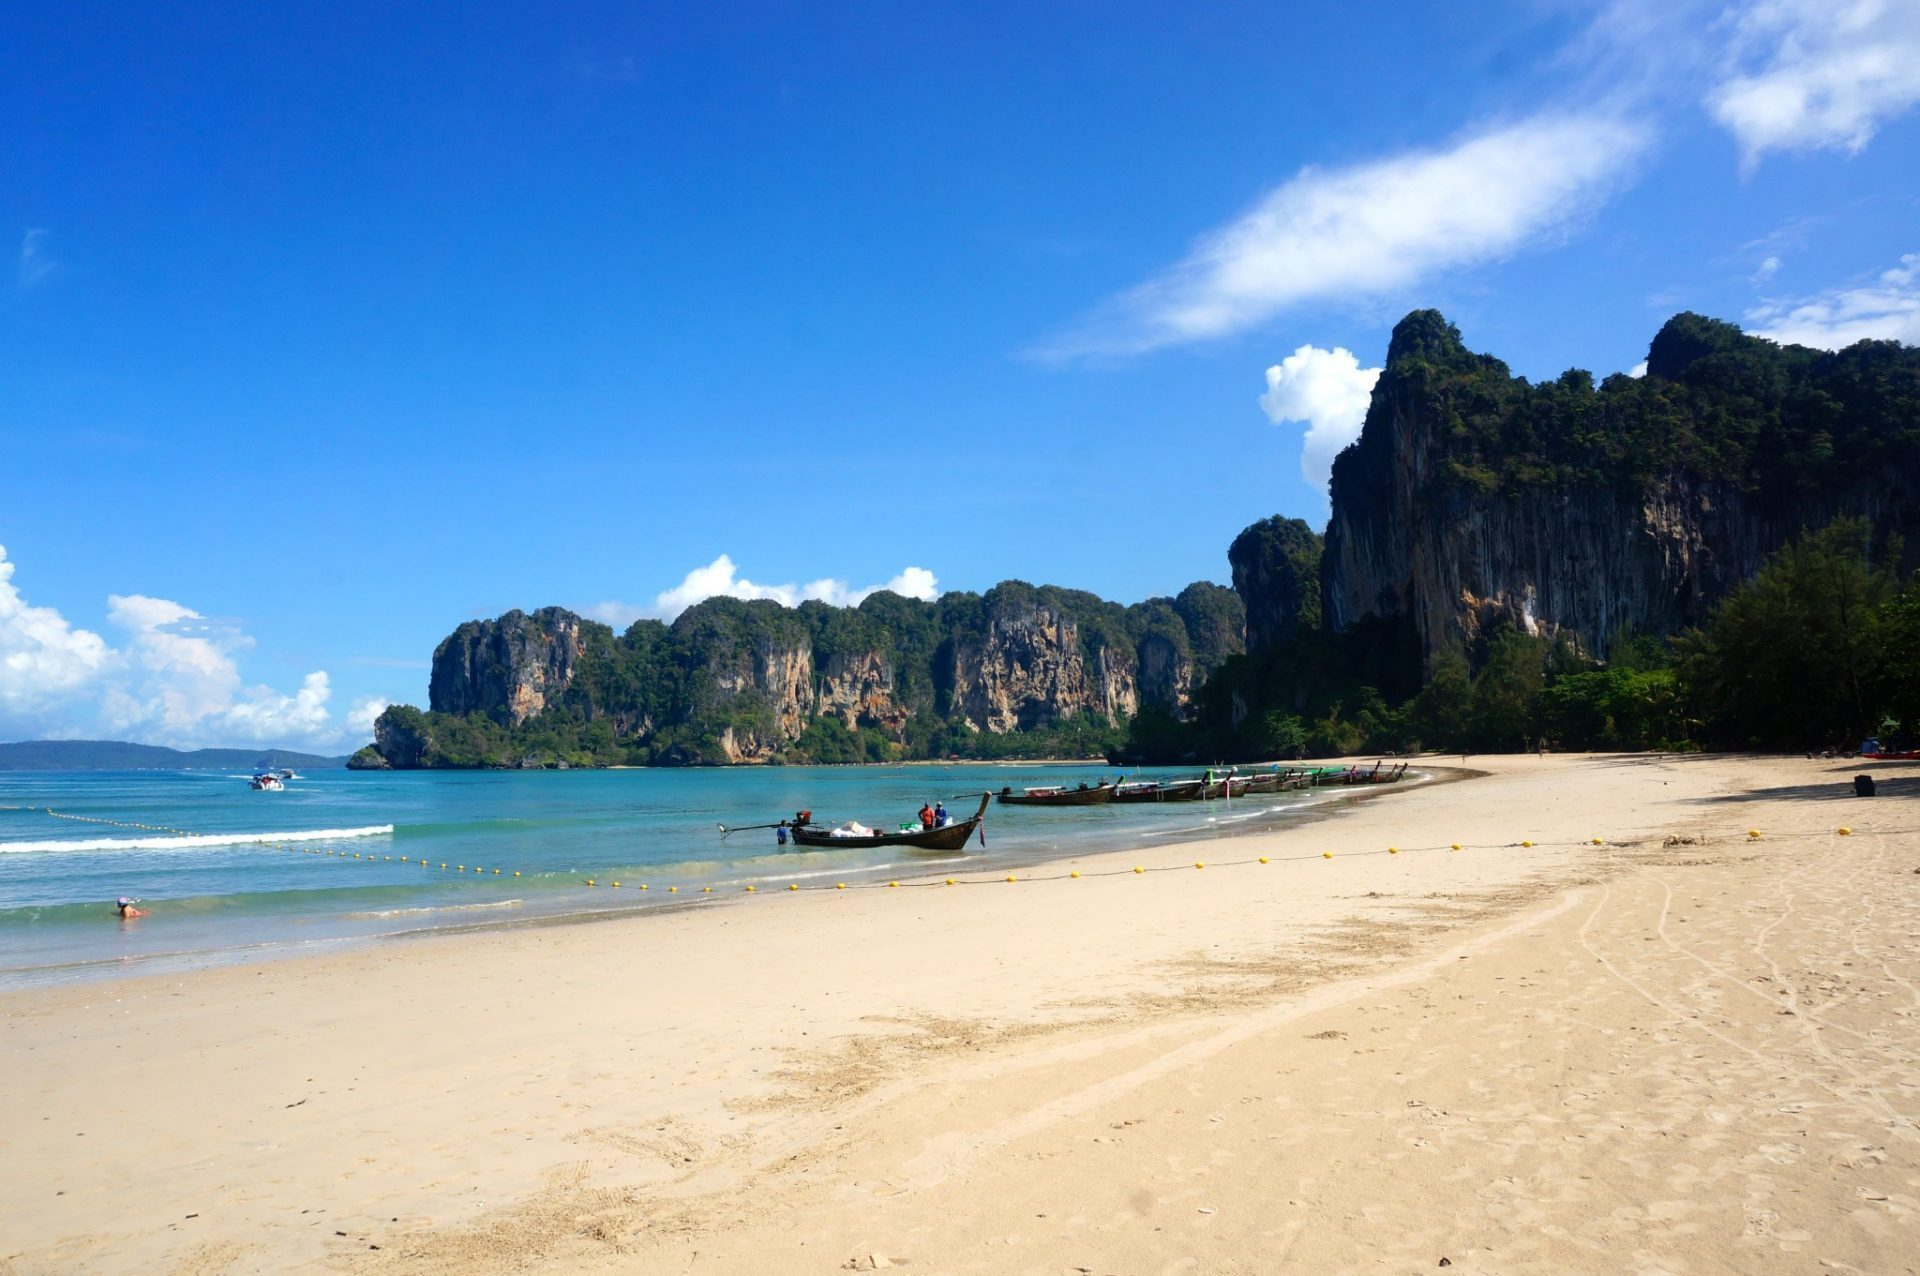 Top 10 Things To Do in Railay Beach Thailand: Travel Guide